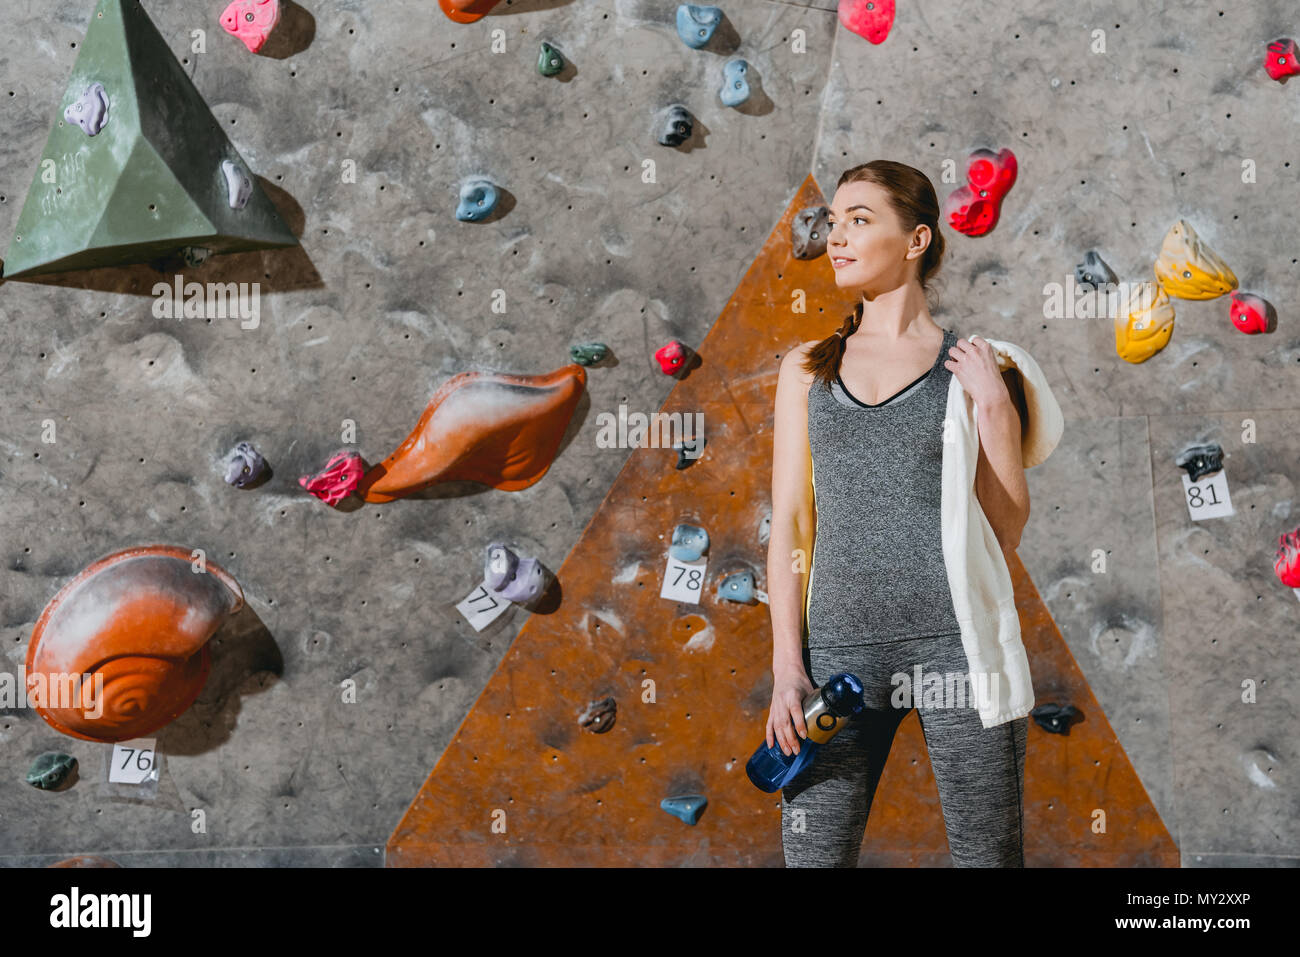 Half-length shot of a young woman in sportive attire posing in front of climbing wall - Stock Image